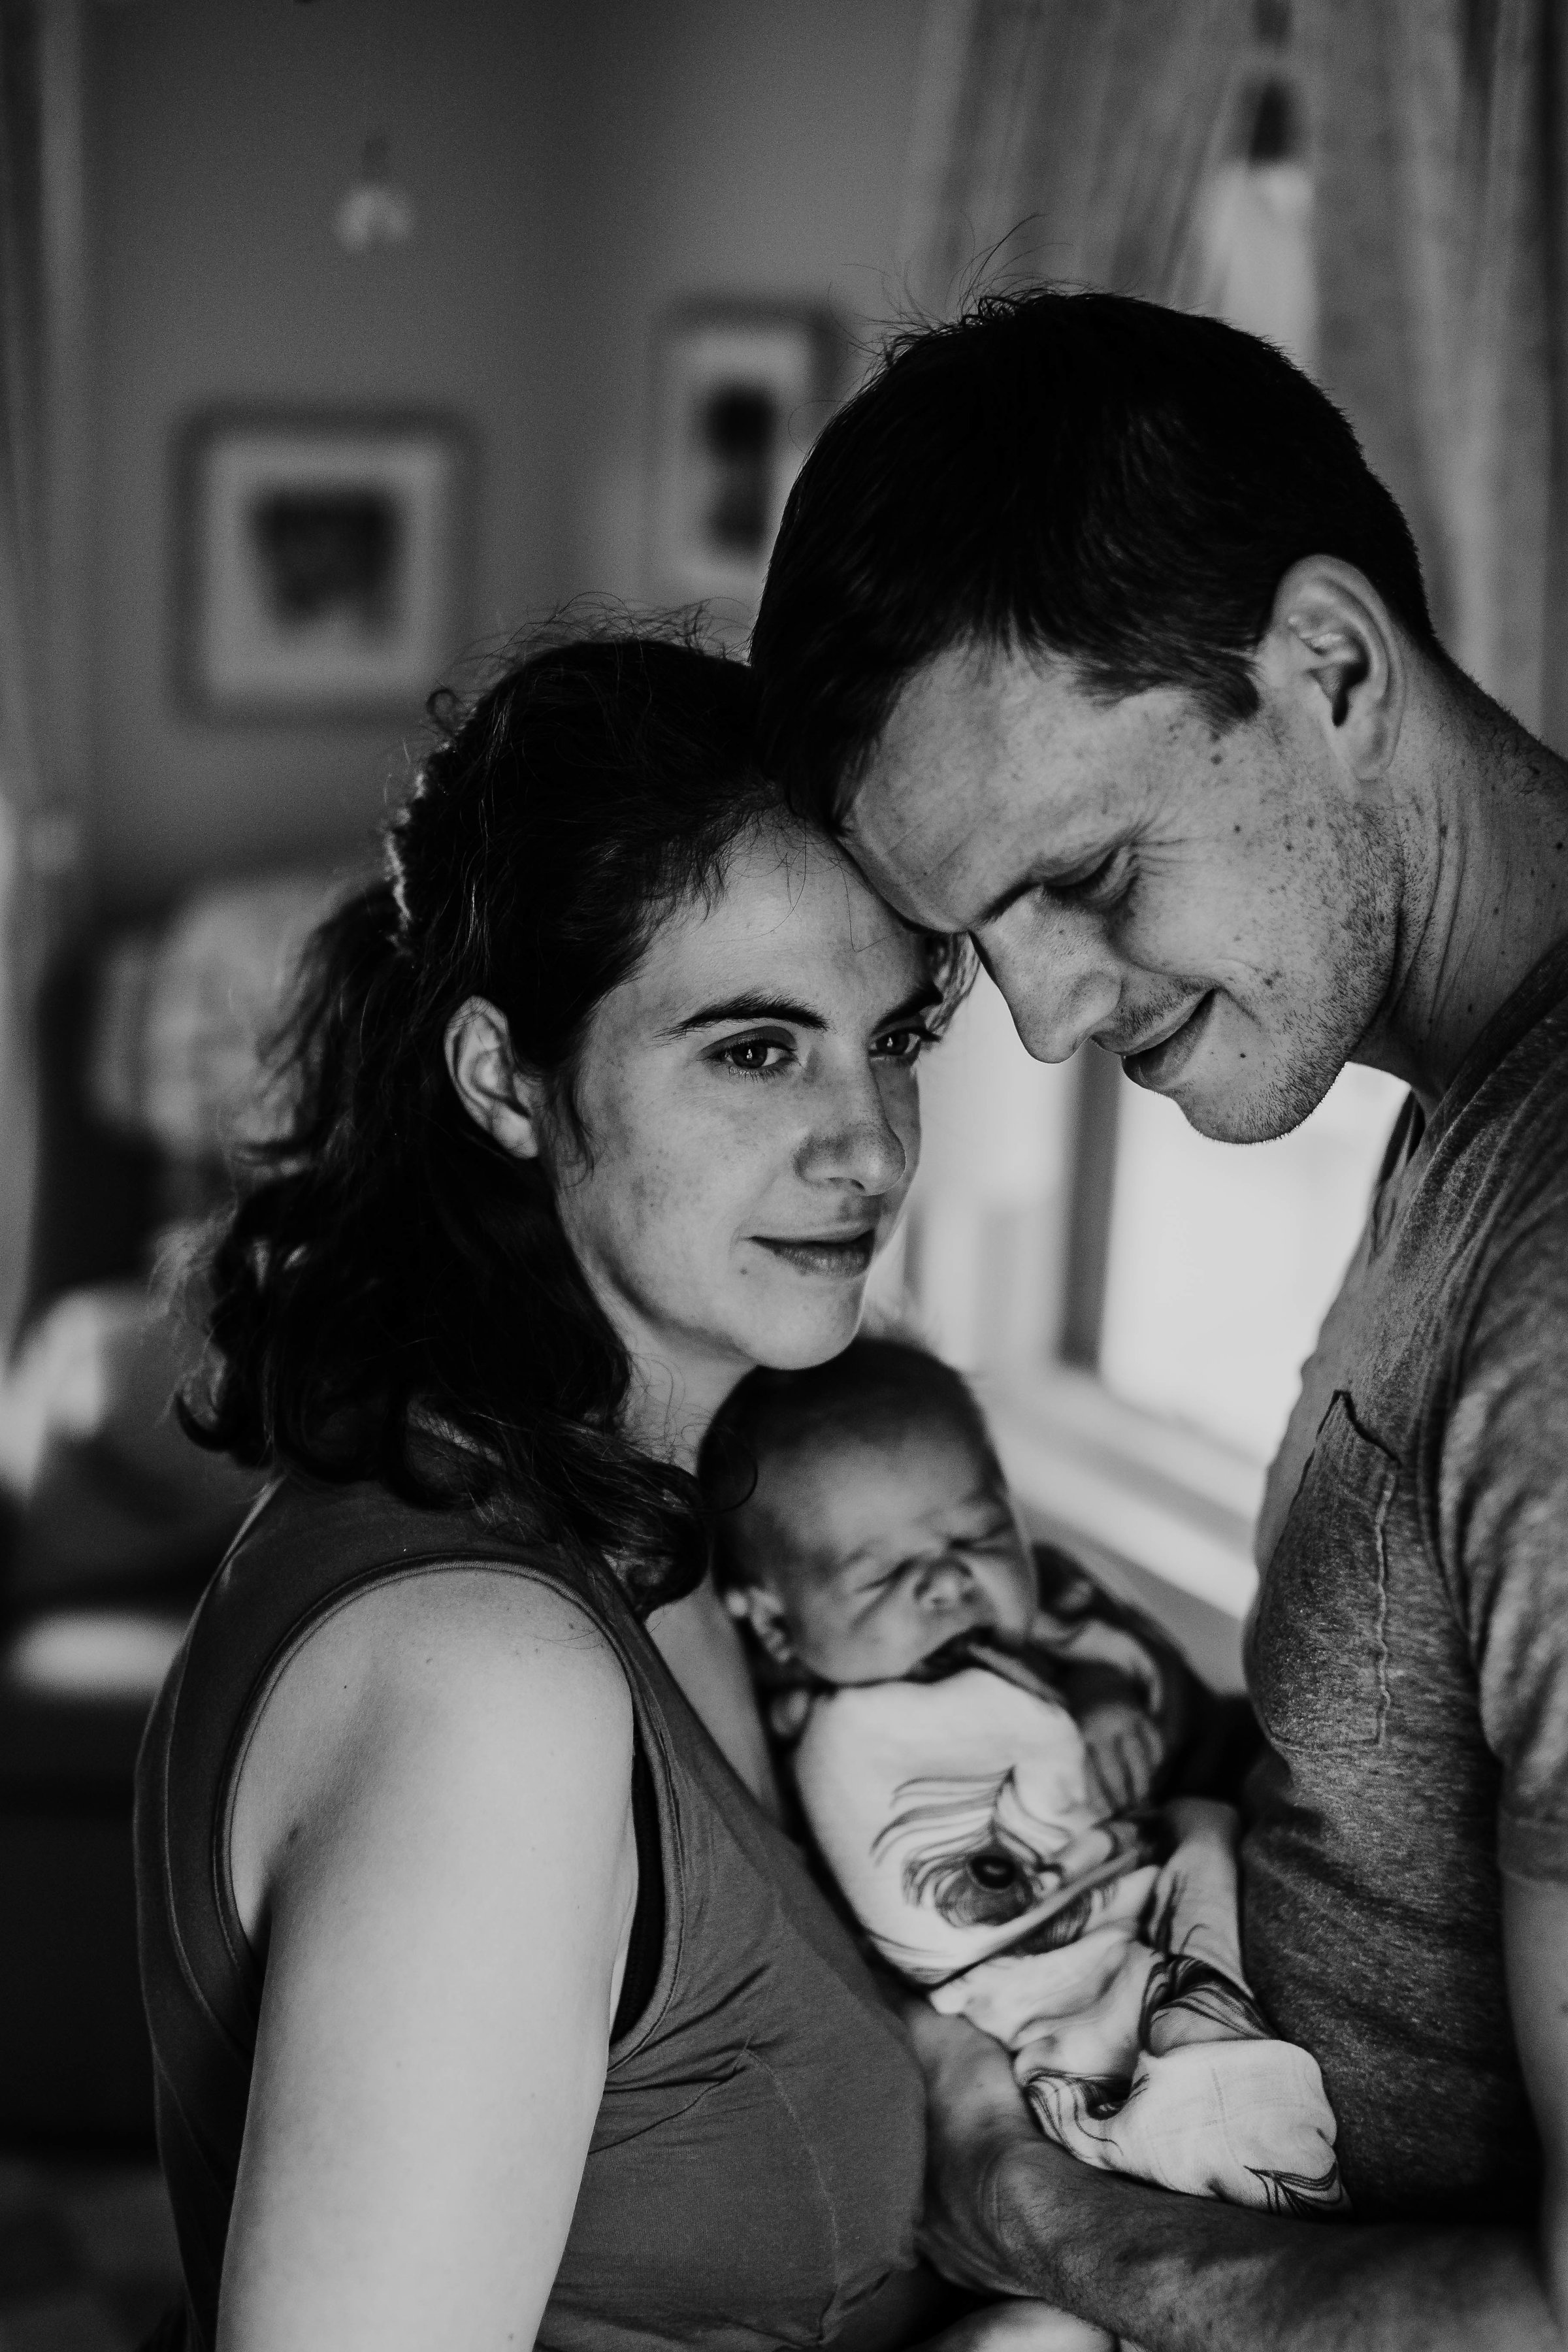 A moment of peace with the whole family before the window in black and white | Paul O Lifestyle Newborn Session | Hannahill Photogrraphy | Kansas City, MO | Family photography in home